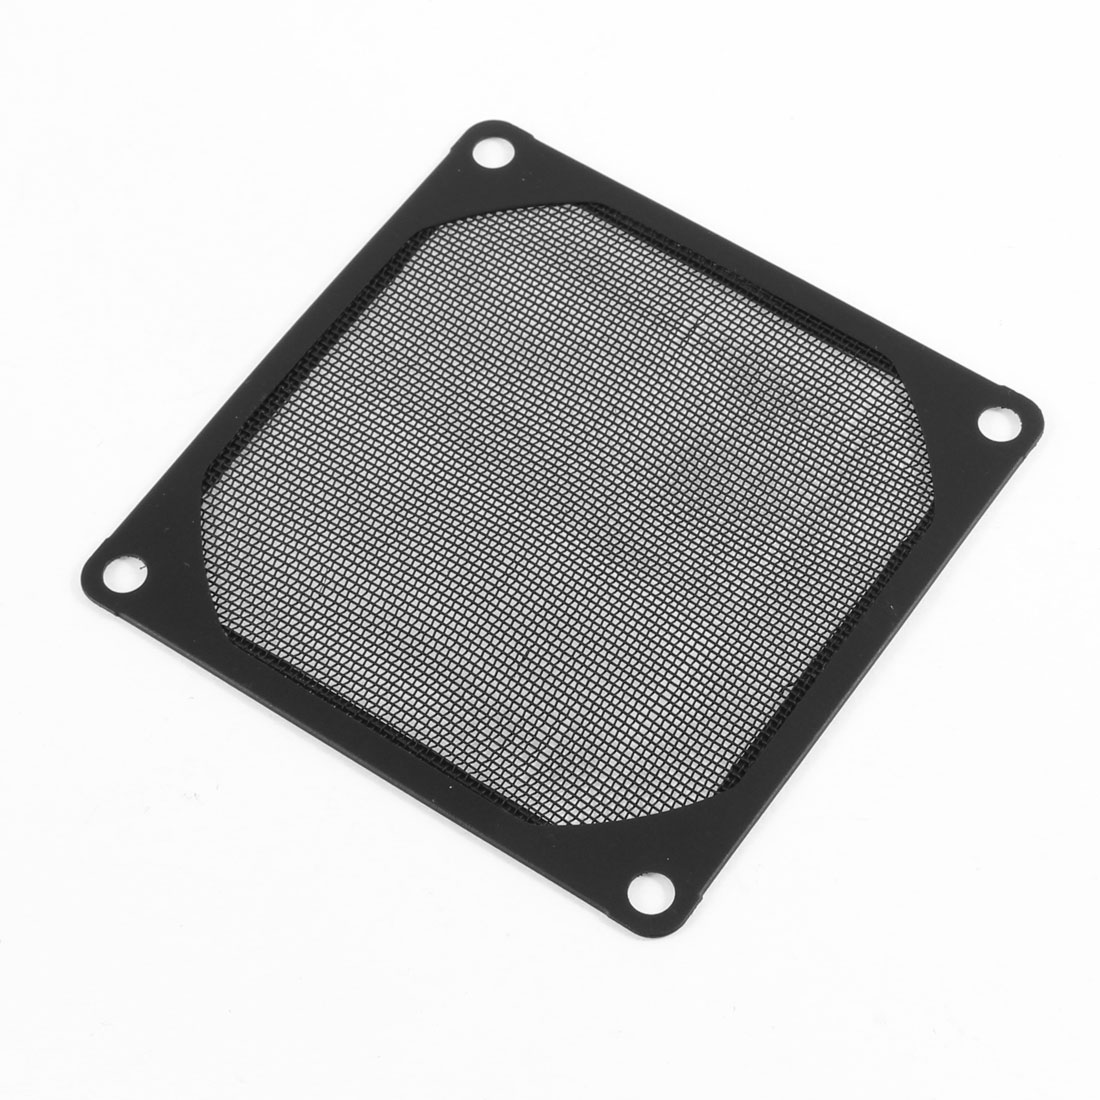 8cm x 8cm PC Cooler Fan Aluminum Dustproof Meshy Filtere Black